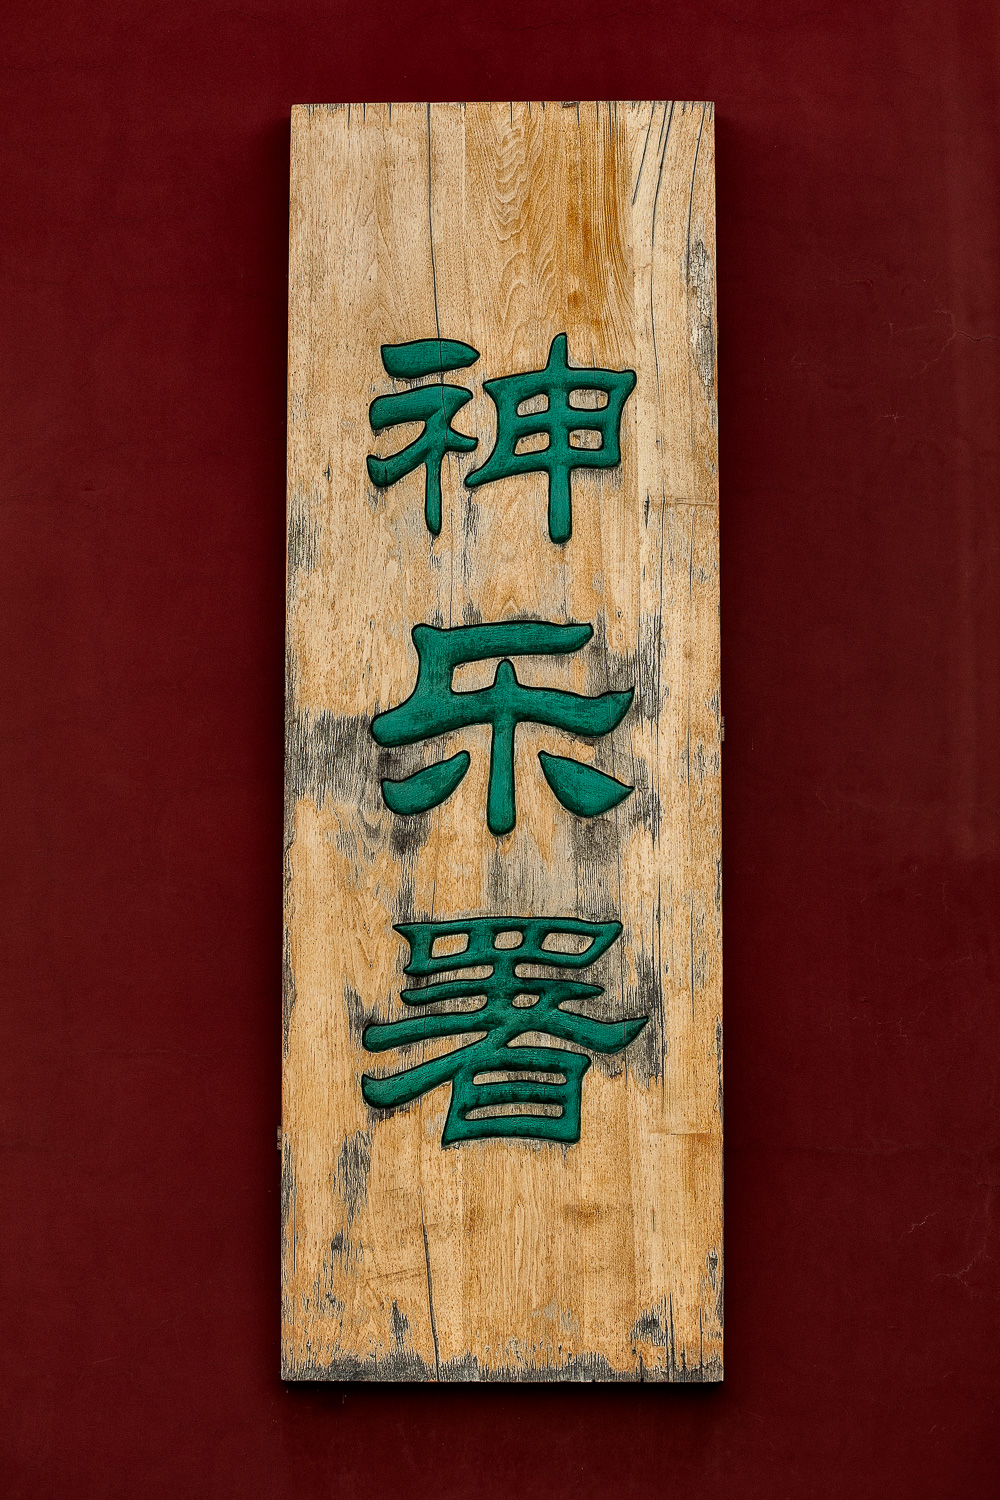 A beautiful, highly textured sign featuring vividly colored characters against a red wall in the grounds of the spectacular Temple of Heaven in Beijing, China.